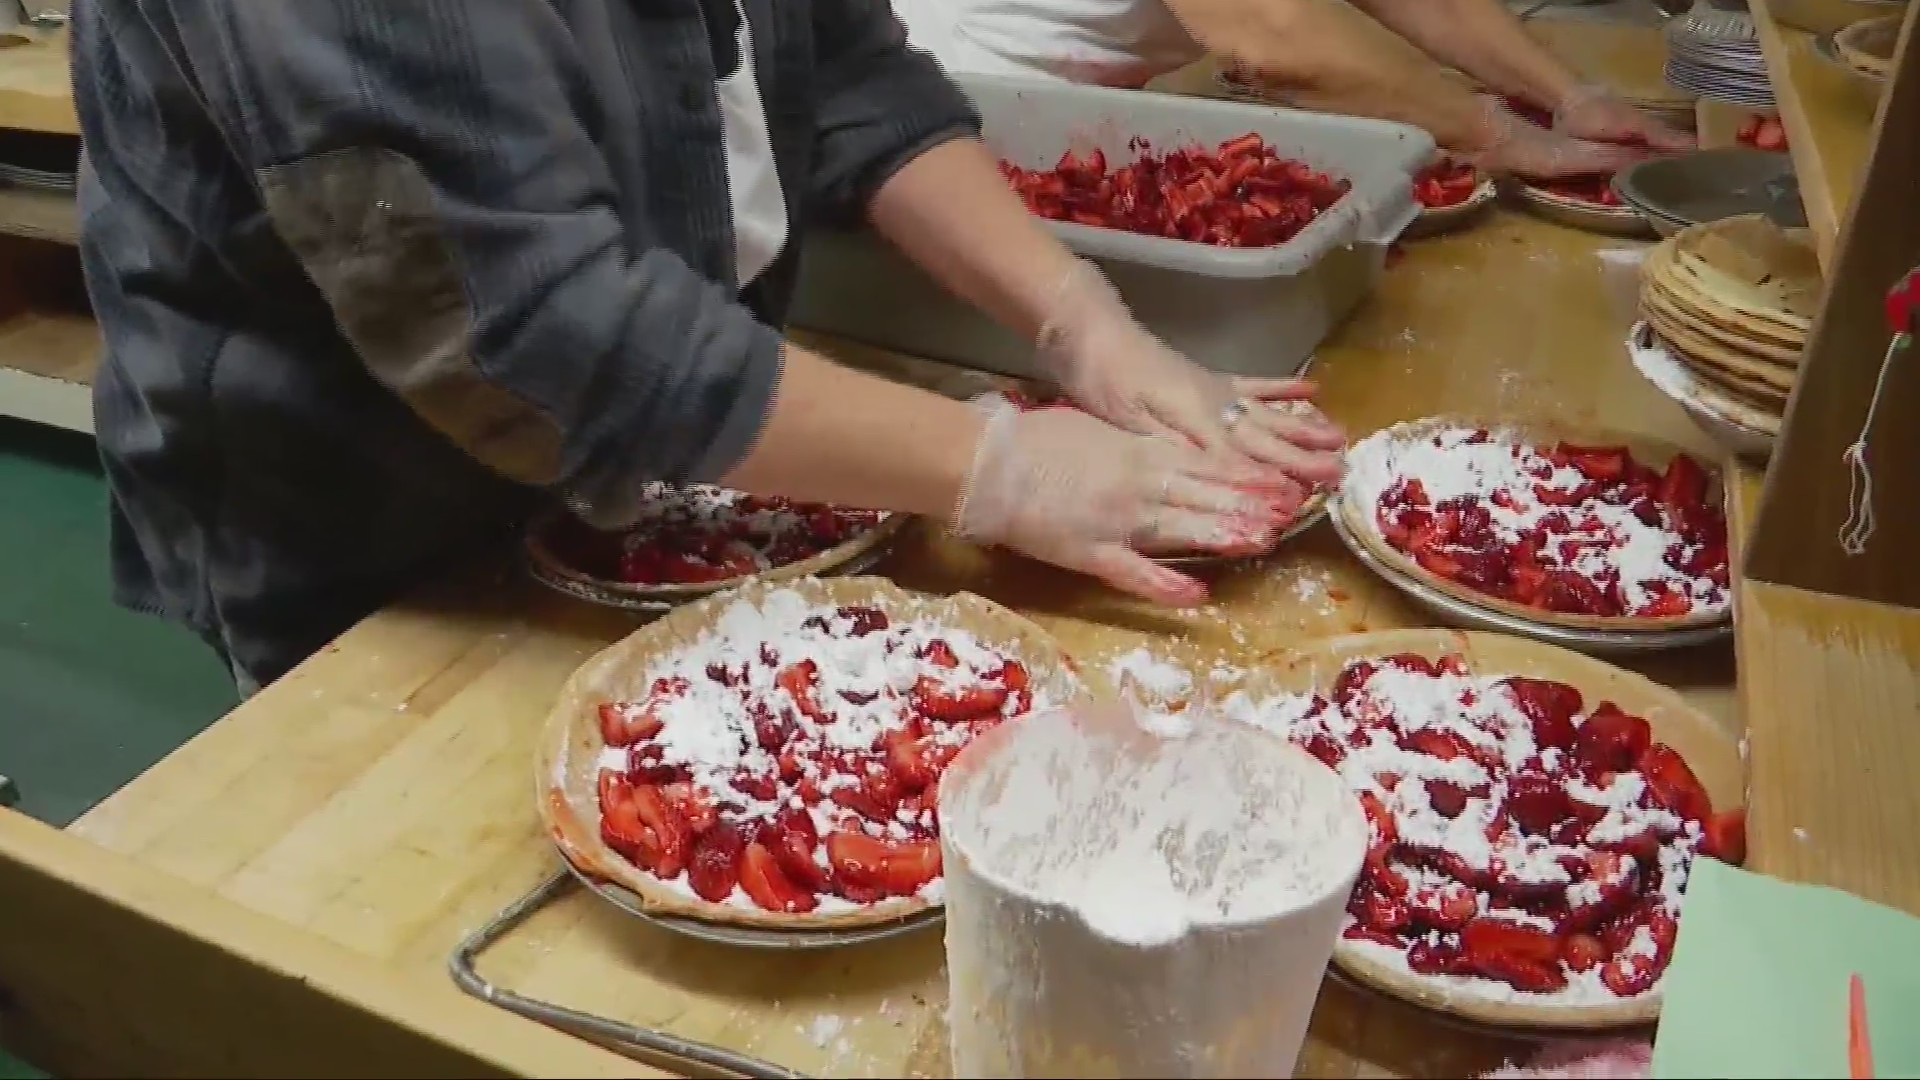 Strawberry pie week underway at Jim's Spaghetti